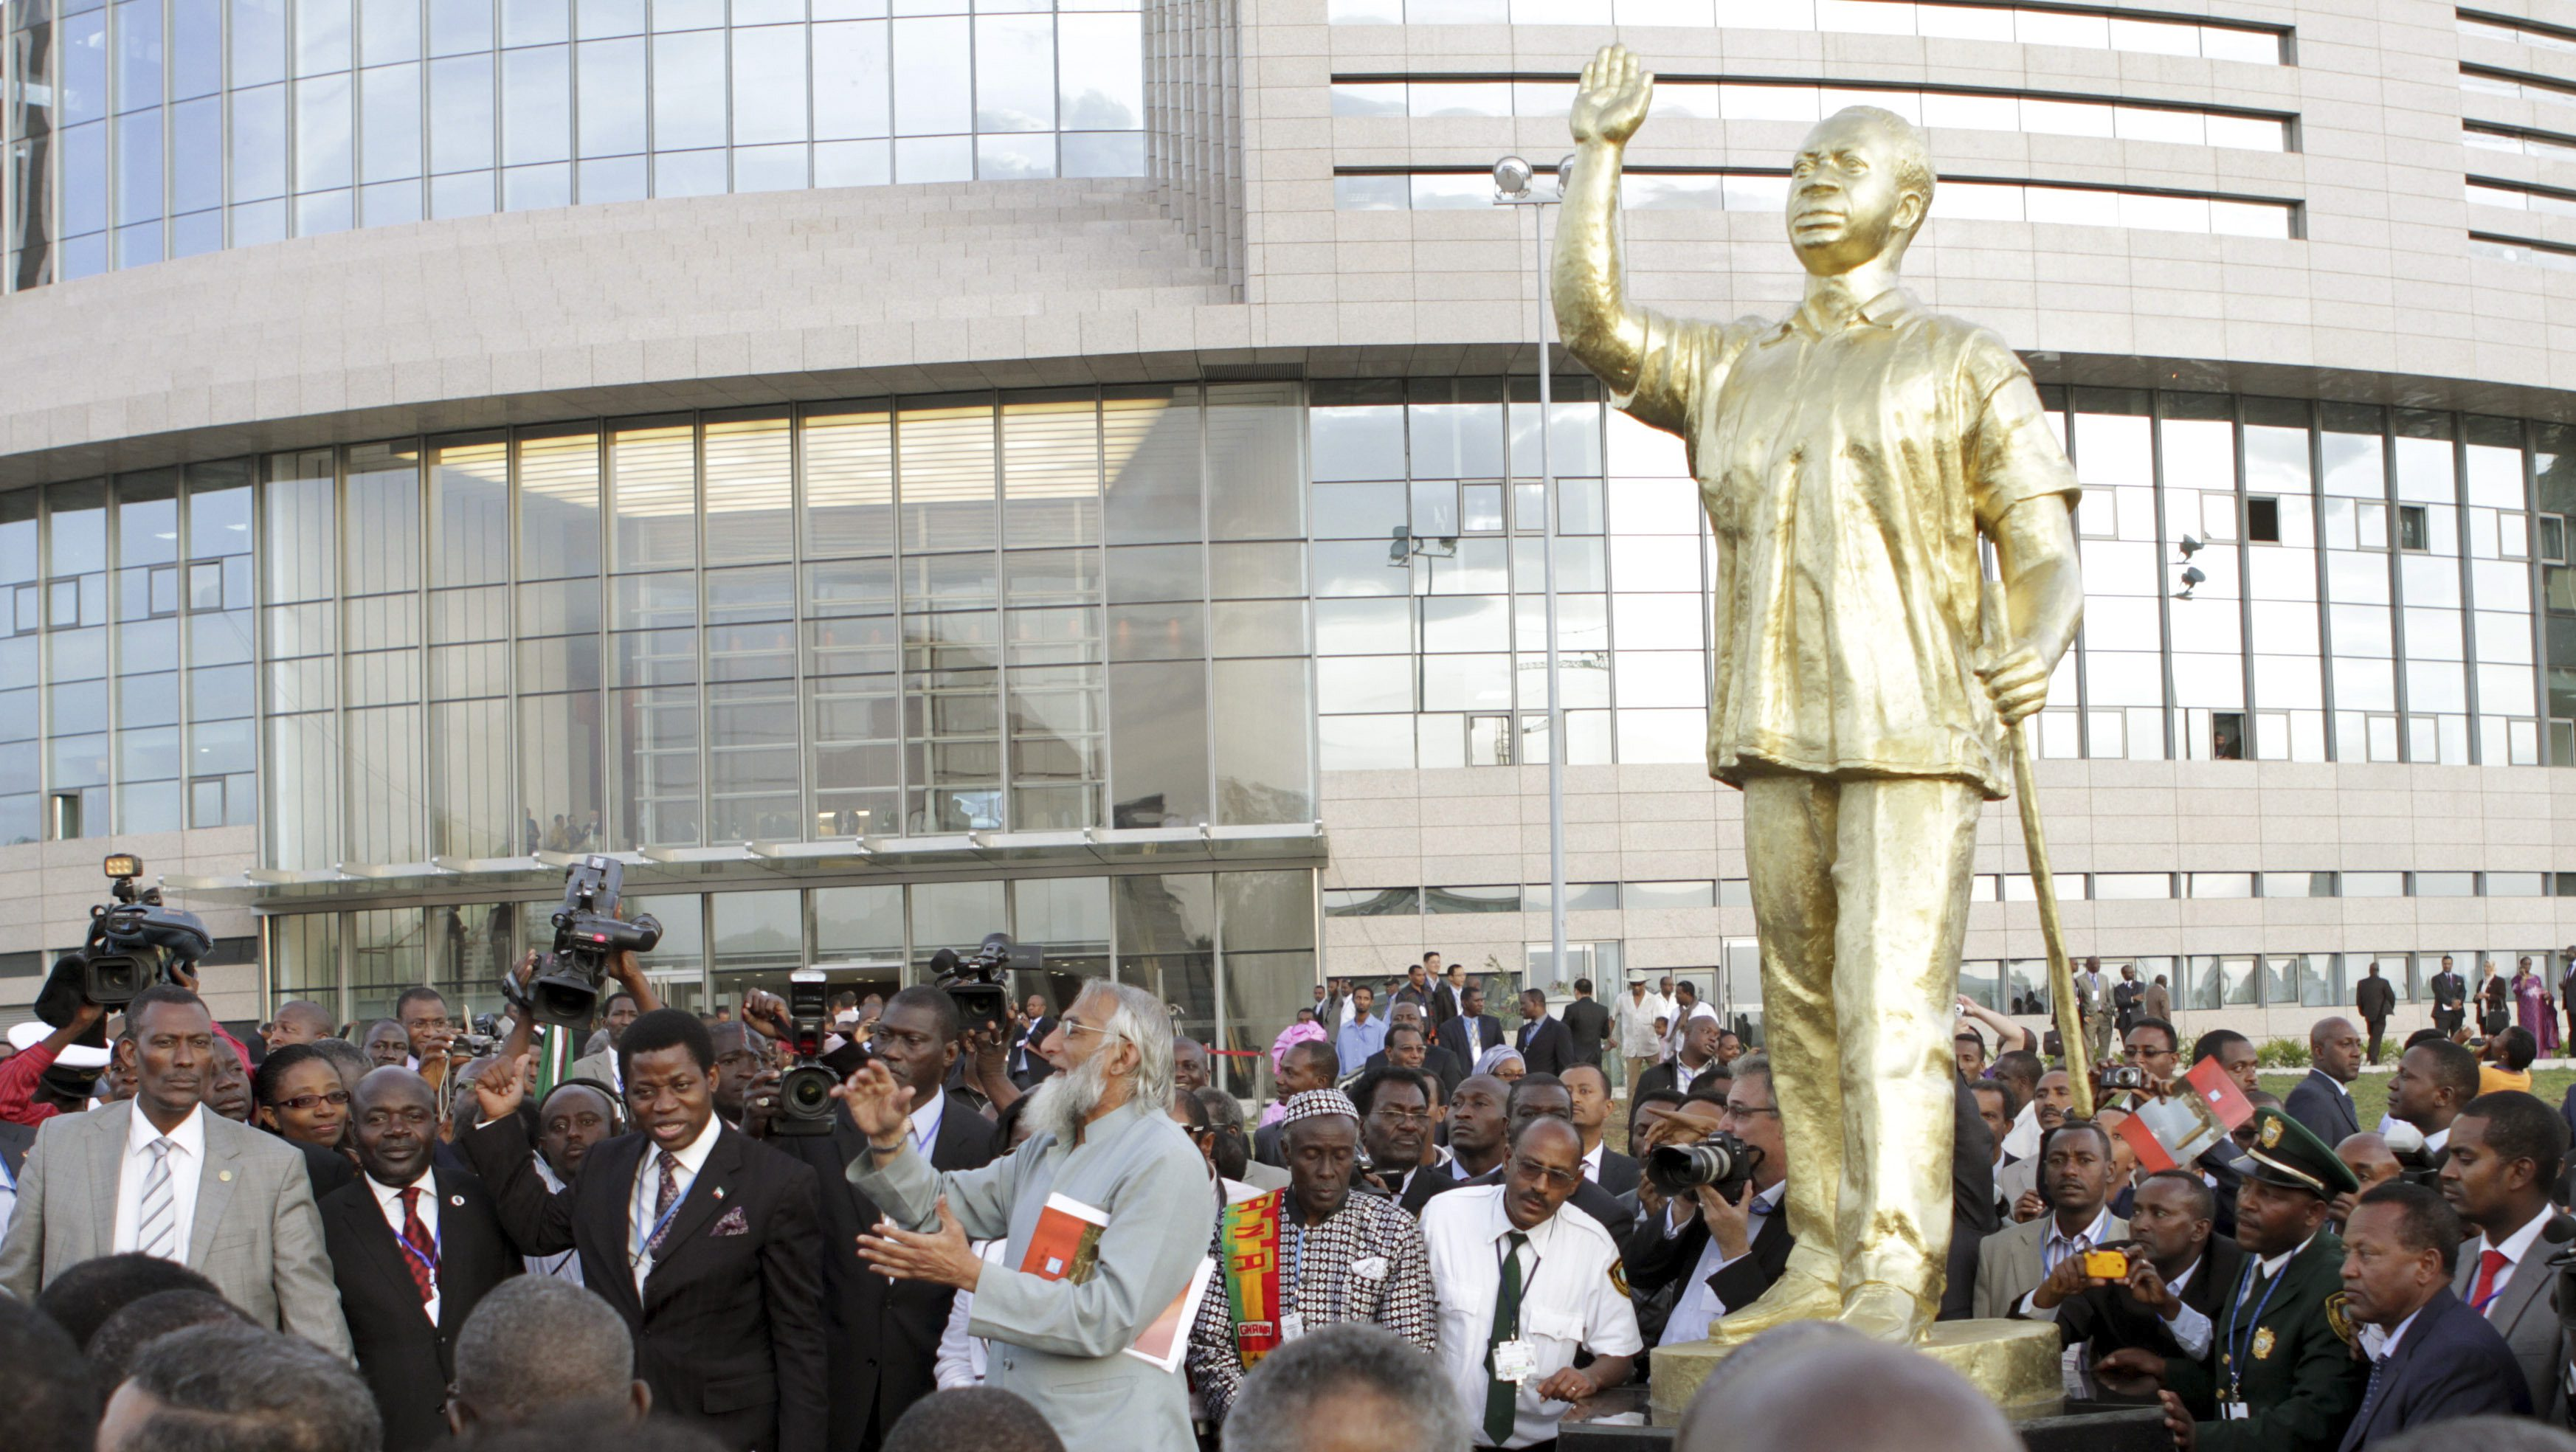 Dignitaries and delegates mill around a statue of Ghana's late leader Kwame Nkrumah at the opening of the new African Union headquarters in Ethiopia's capital Addis Ababa January 28, 2012.